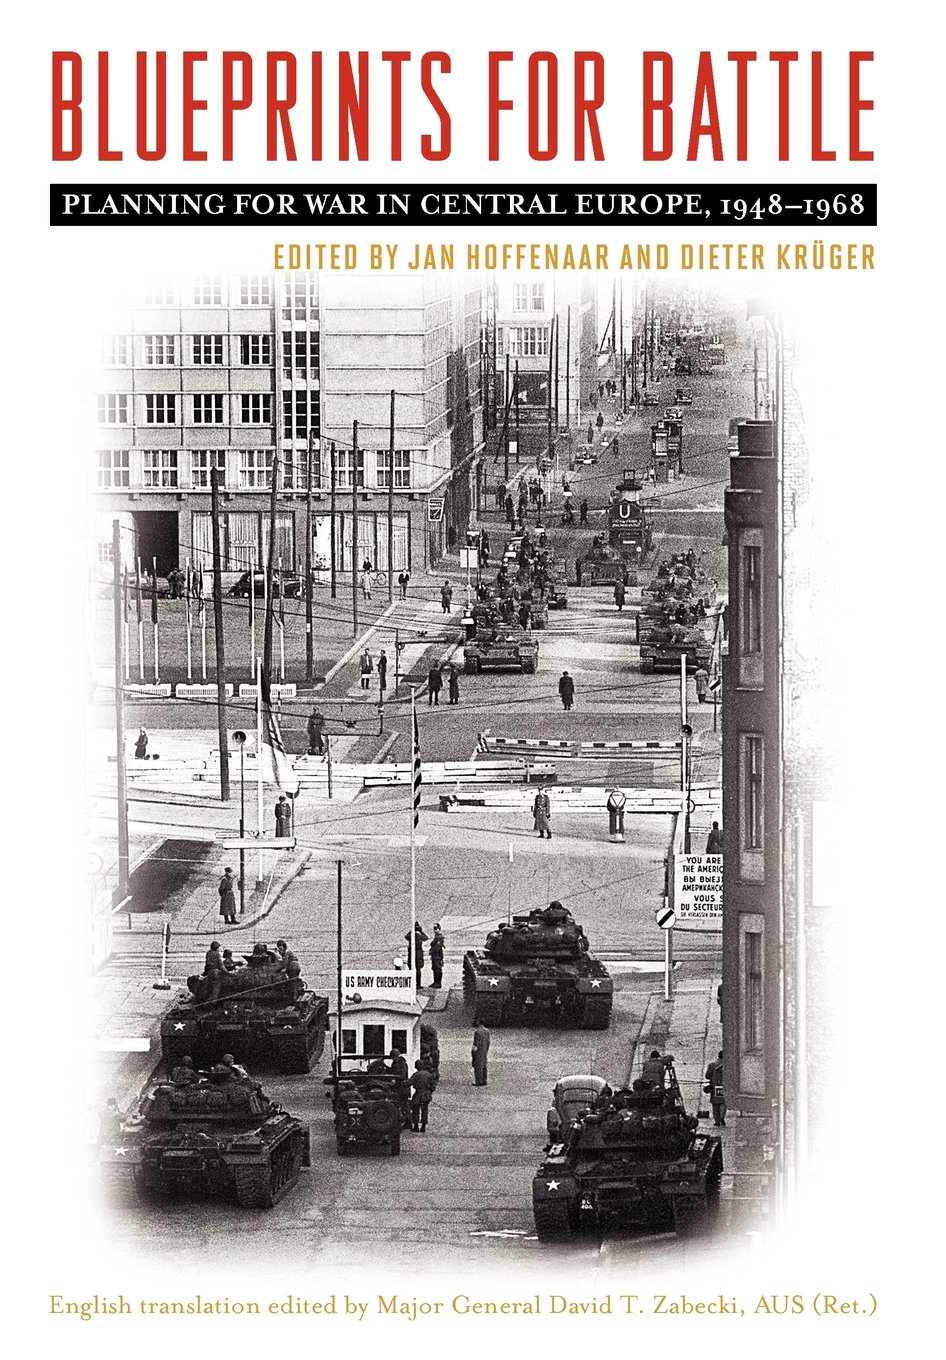 Blueprints for Battle: Planning for War in Central Europe, 1948-1968 (Foreign Military Studies) pdf